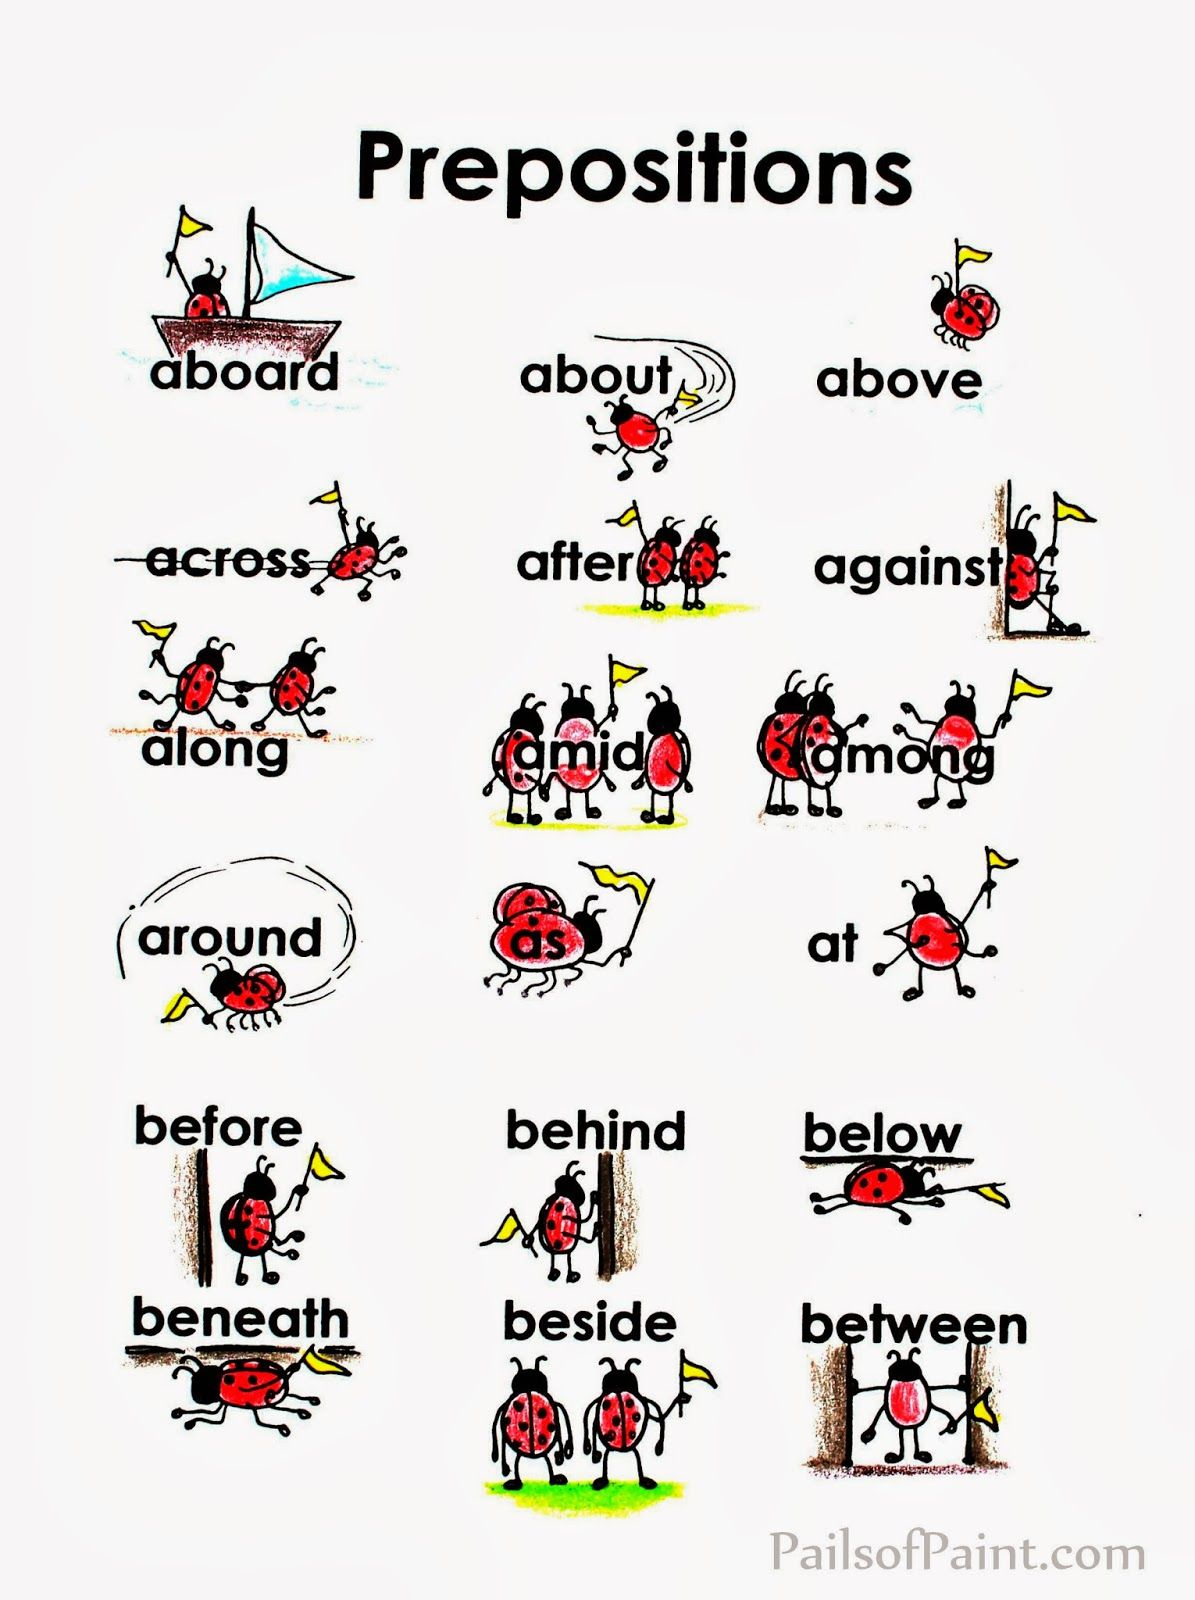 Free Prepositions Printable Quoteducation Is Not The